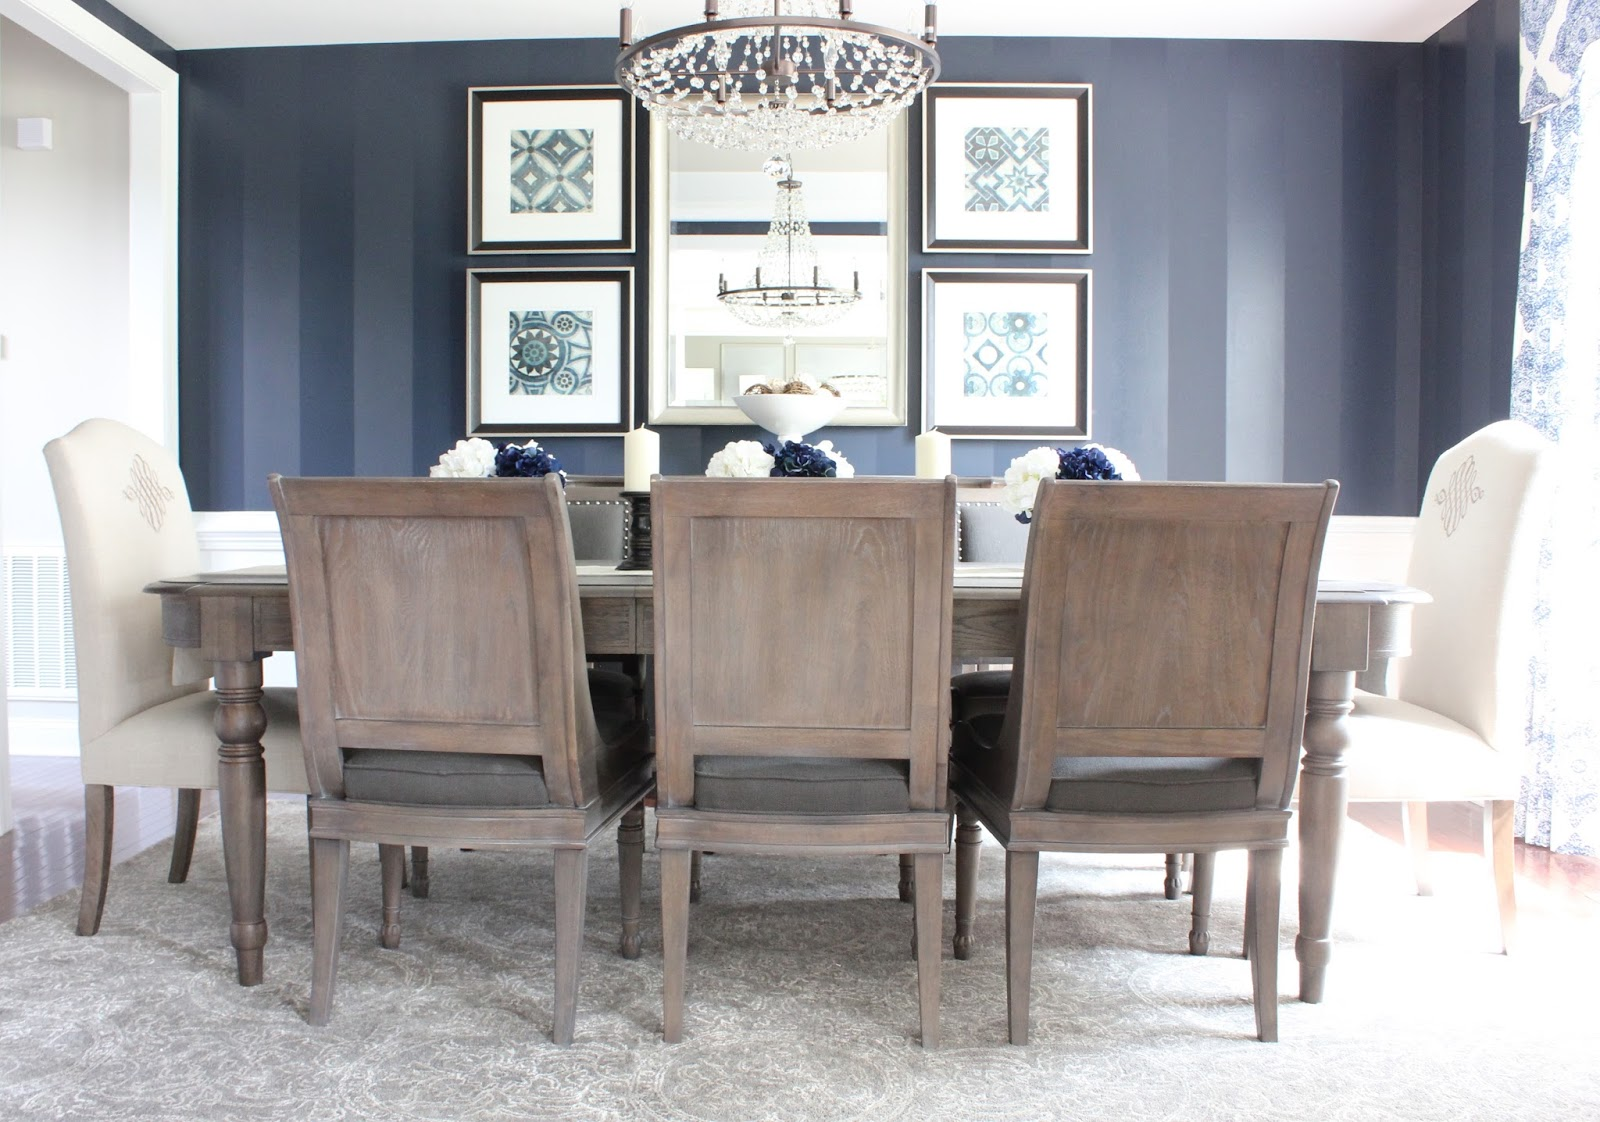 decorating with color - new south home